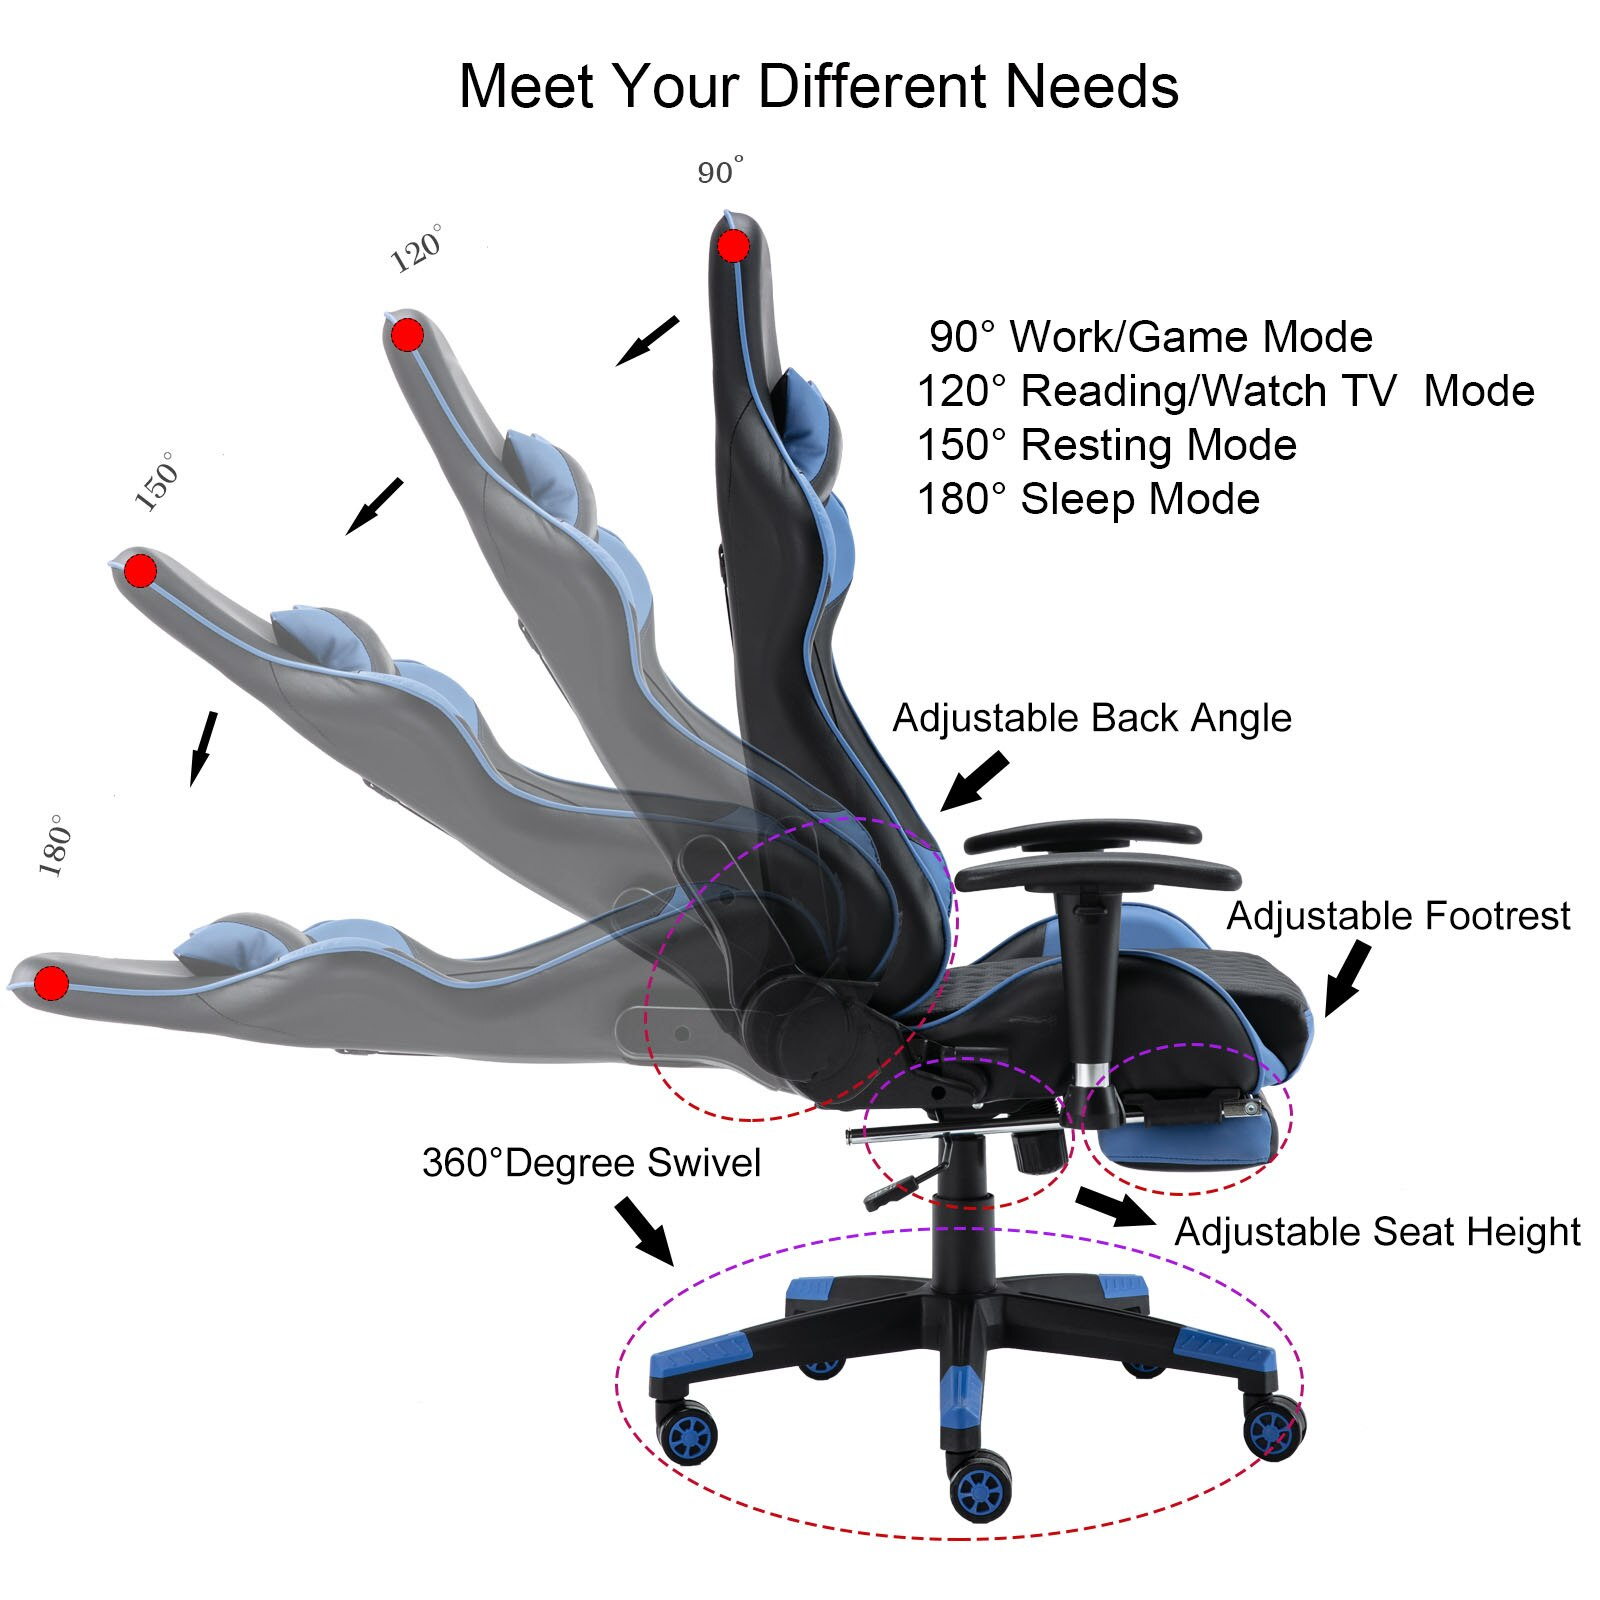 H09d2443a47e149f297ea0ceabd6a69c5T - Gaming Chair Computer Armchair Adjustable Armrest And Footrest PVC Household Office Chair Ergonomic Computer Gamer Chair